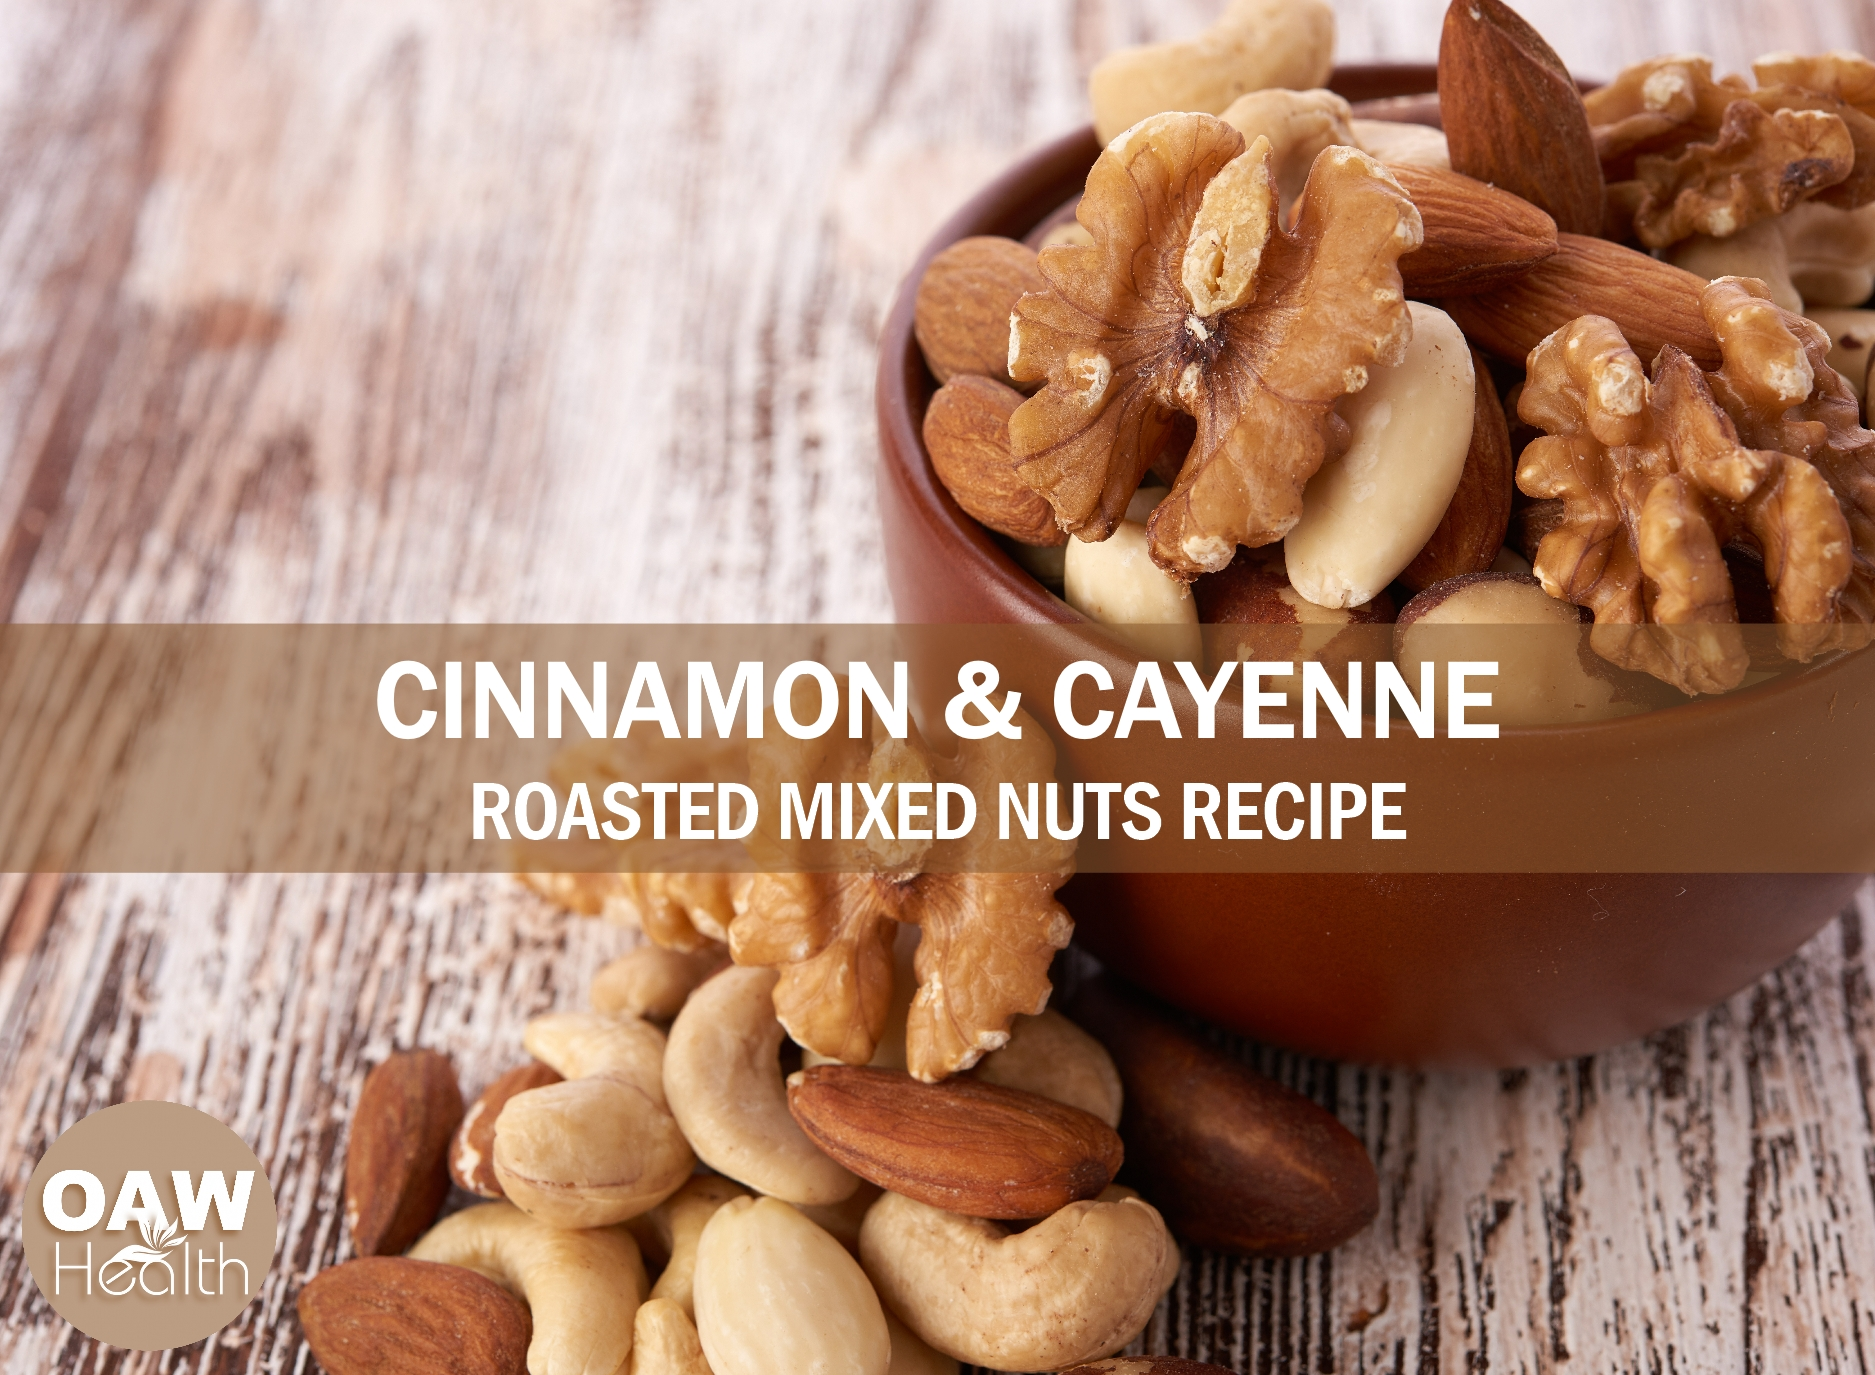 Cinnamon and Cayenne Roasted Mixed Nuts